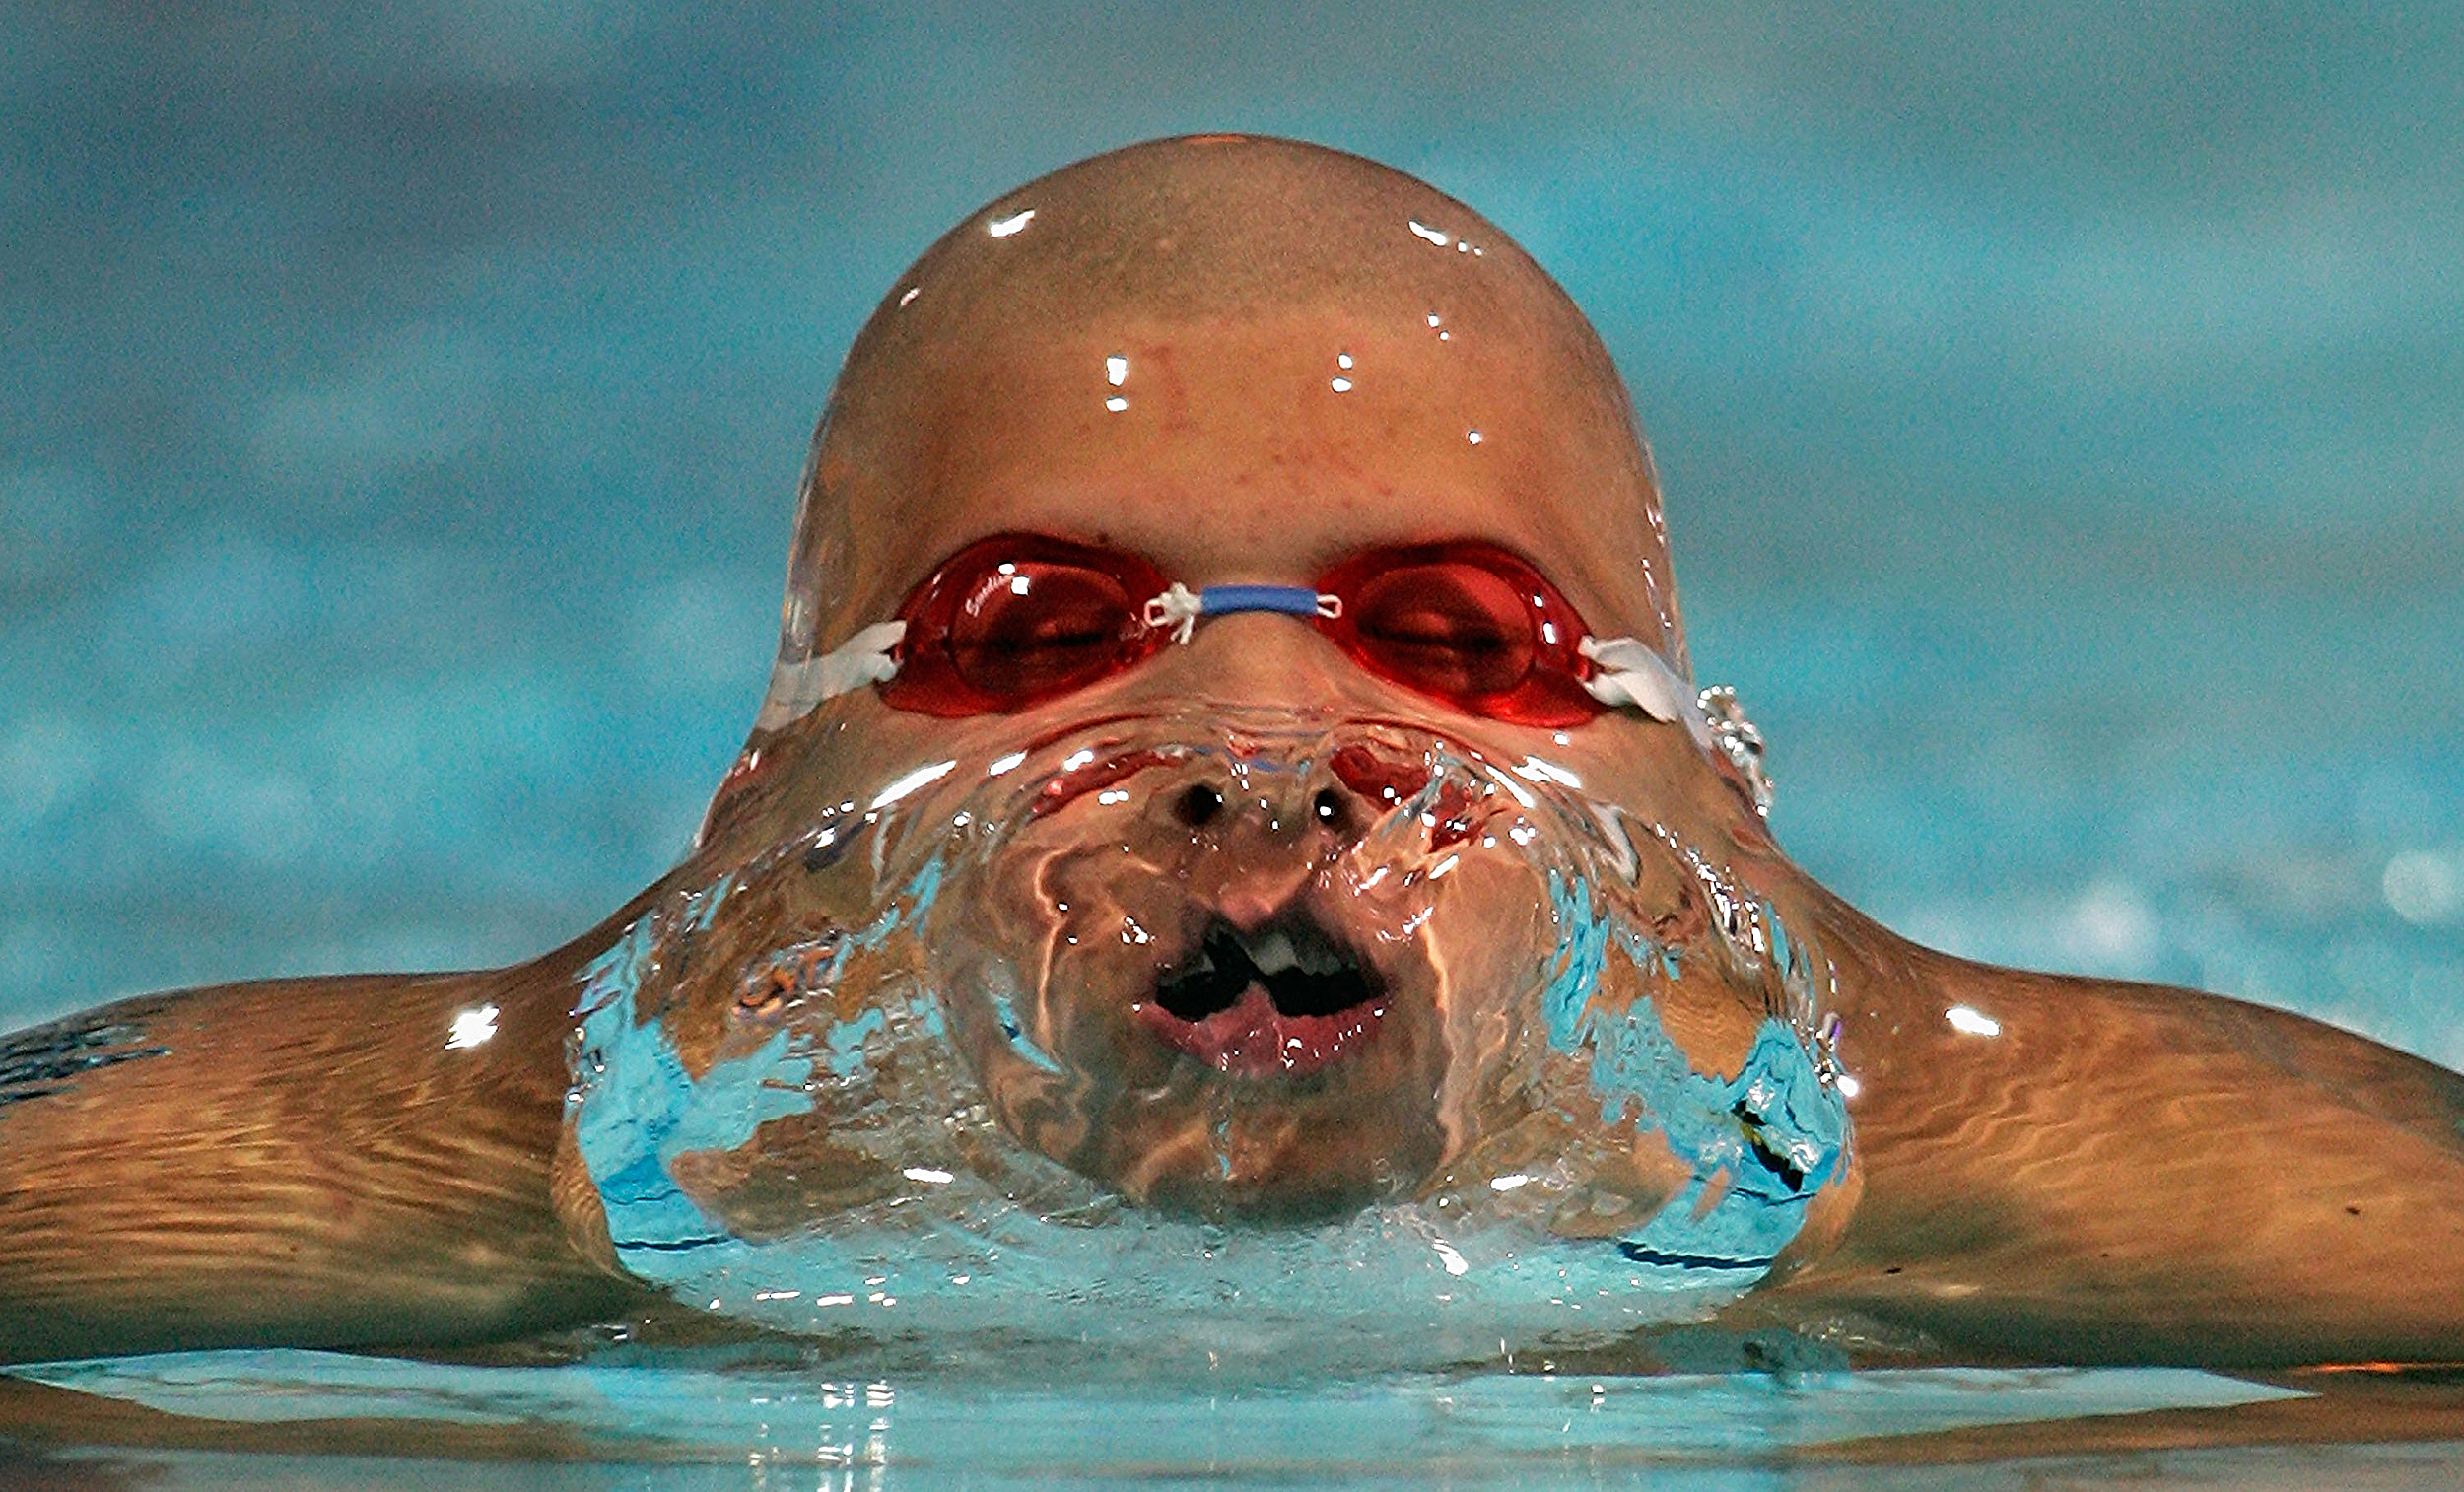 Daniel Gyurta of Hungary competes in the men's 200 meter breaststroke semi-final during the Athens 2004 Summer Olympic Games in Athens, Greece. August 17, 2004 © Daniel Berehulak/Getty Images